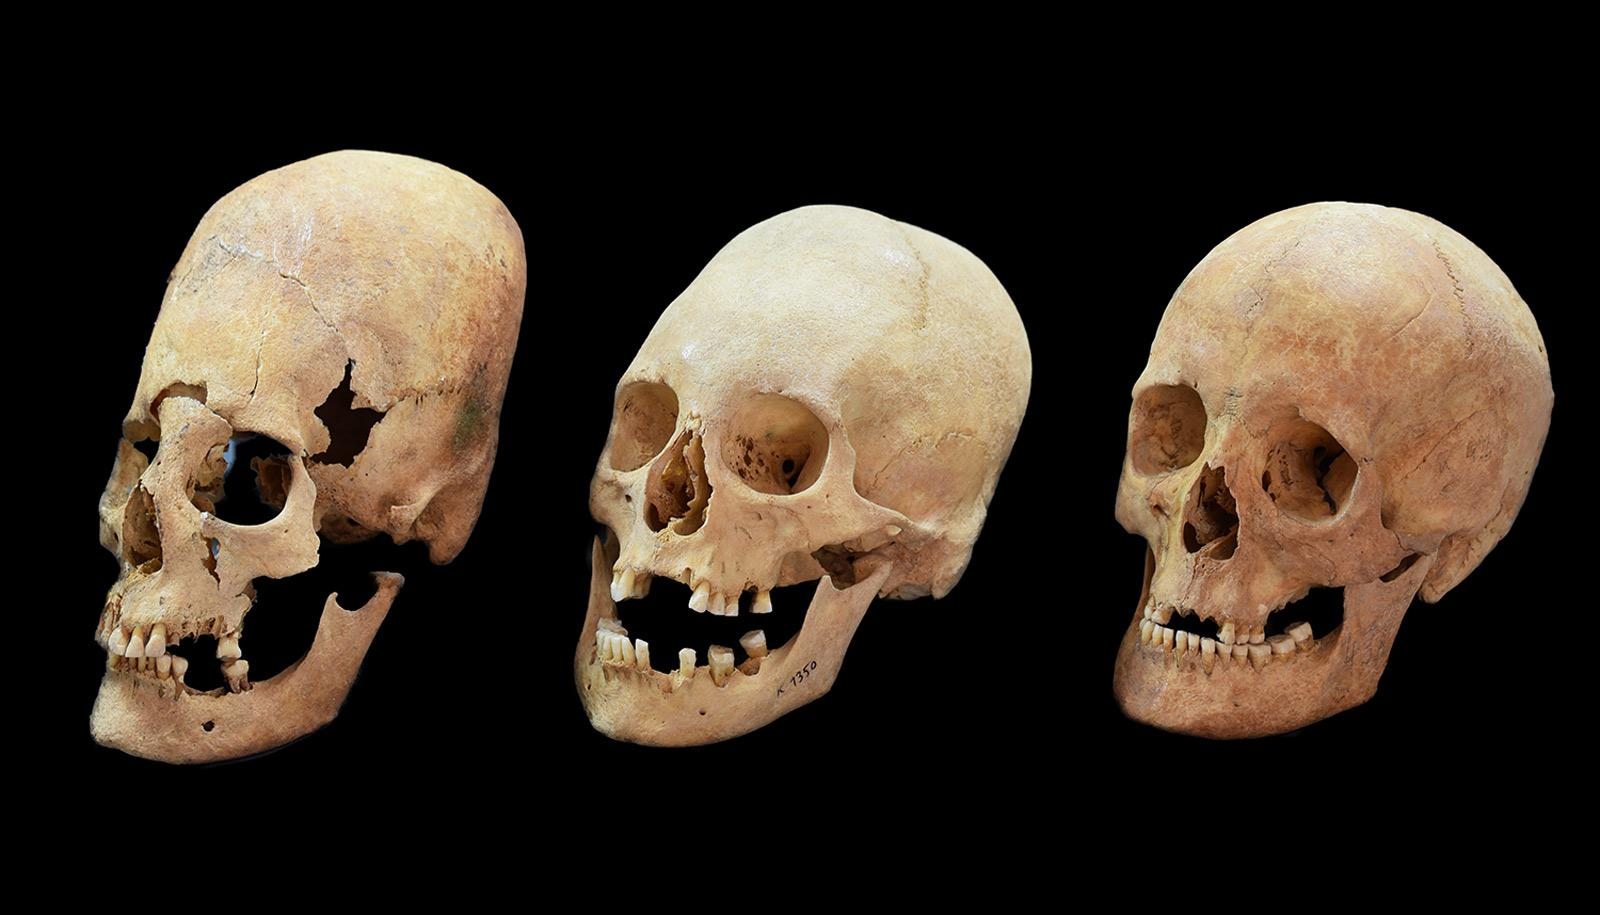 deformed, intermediate, and normal skulls